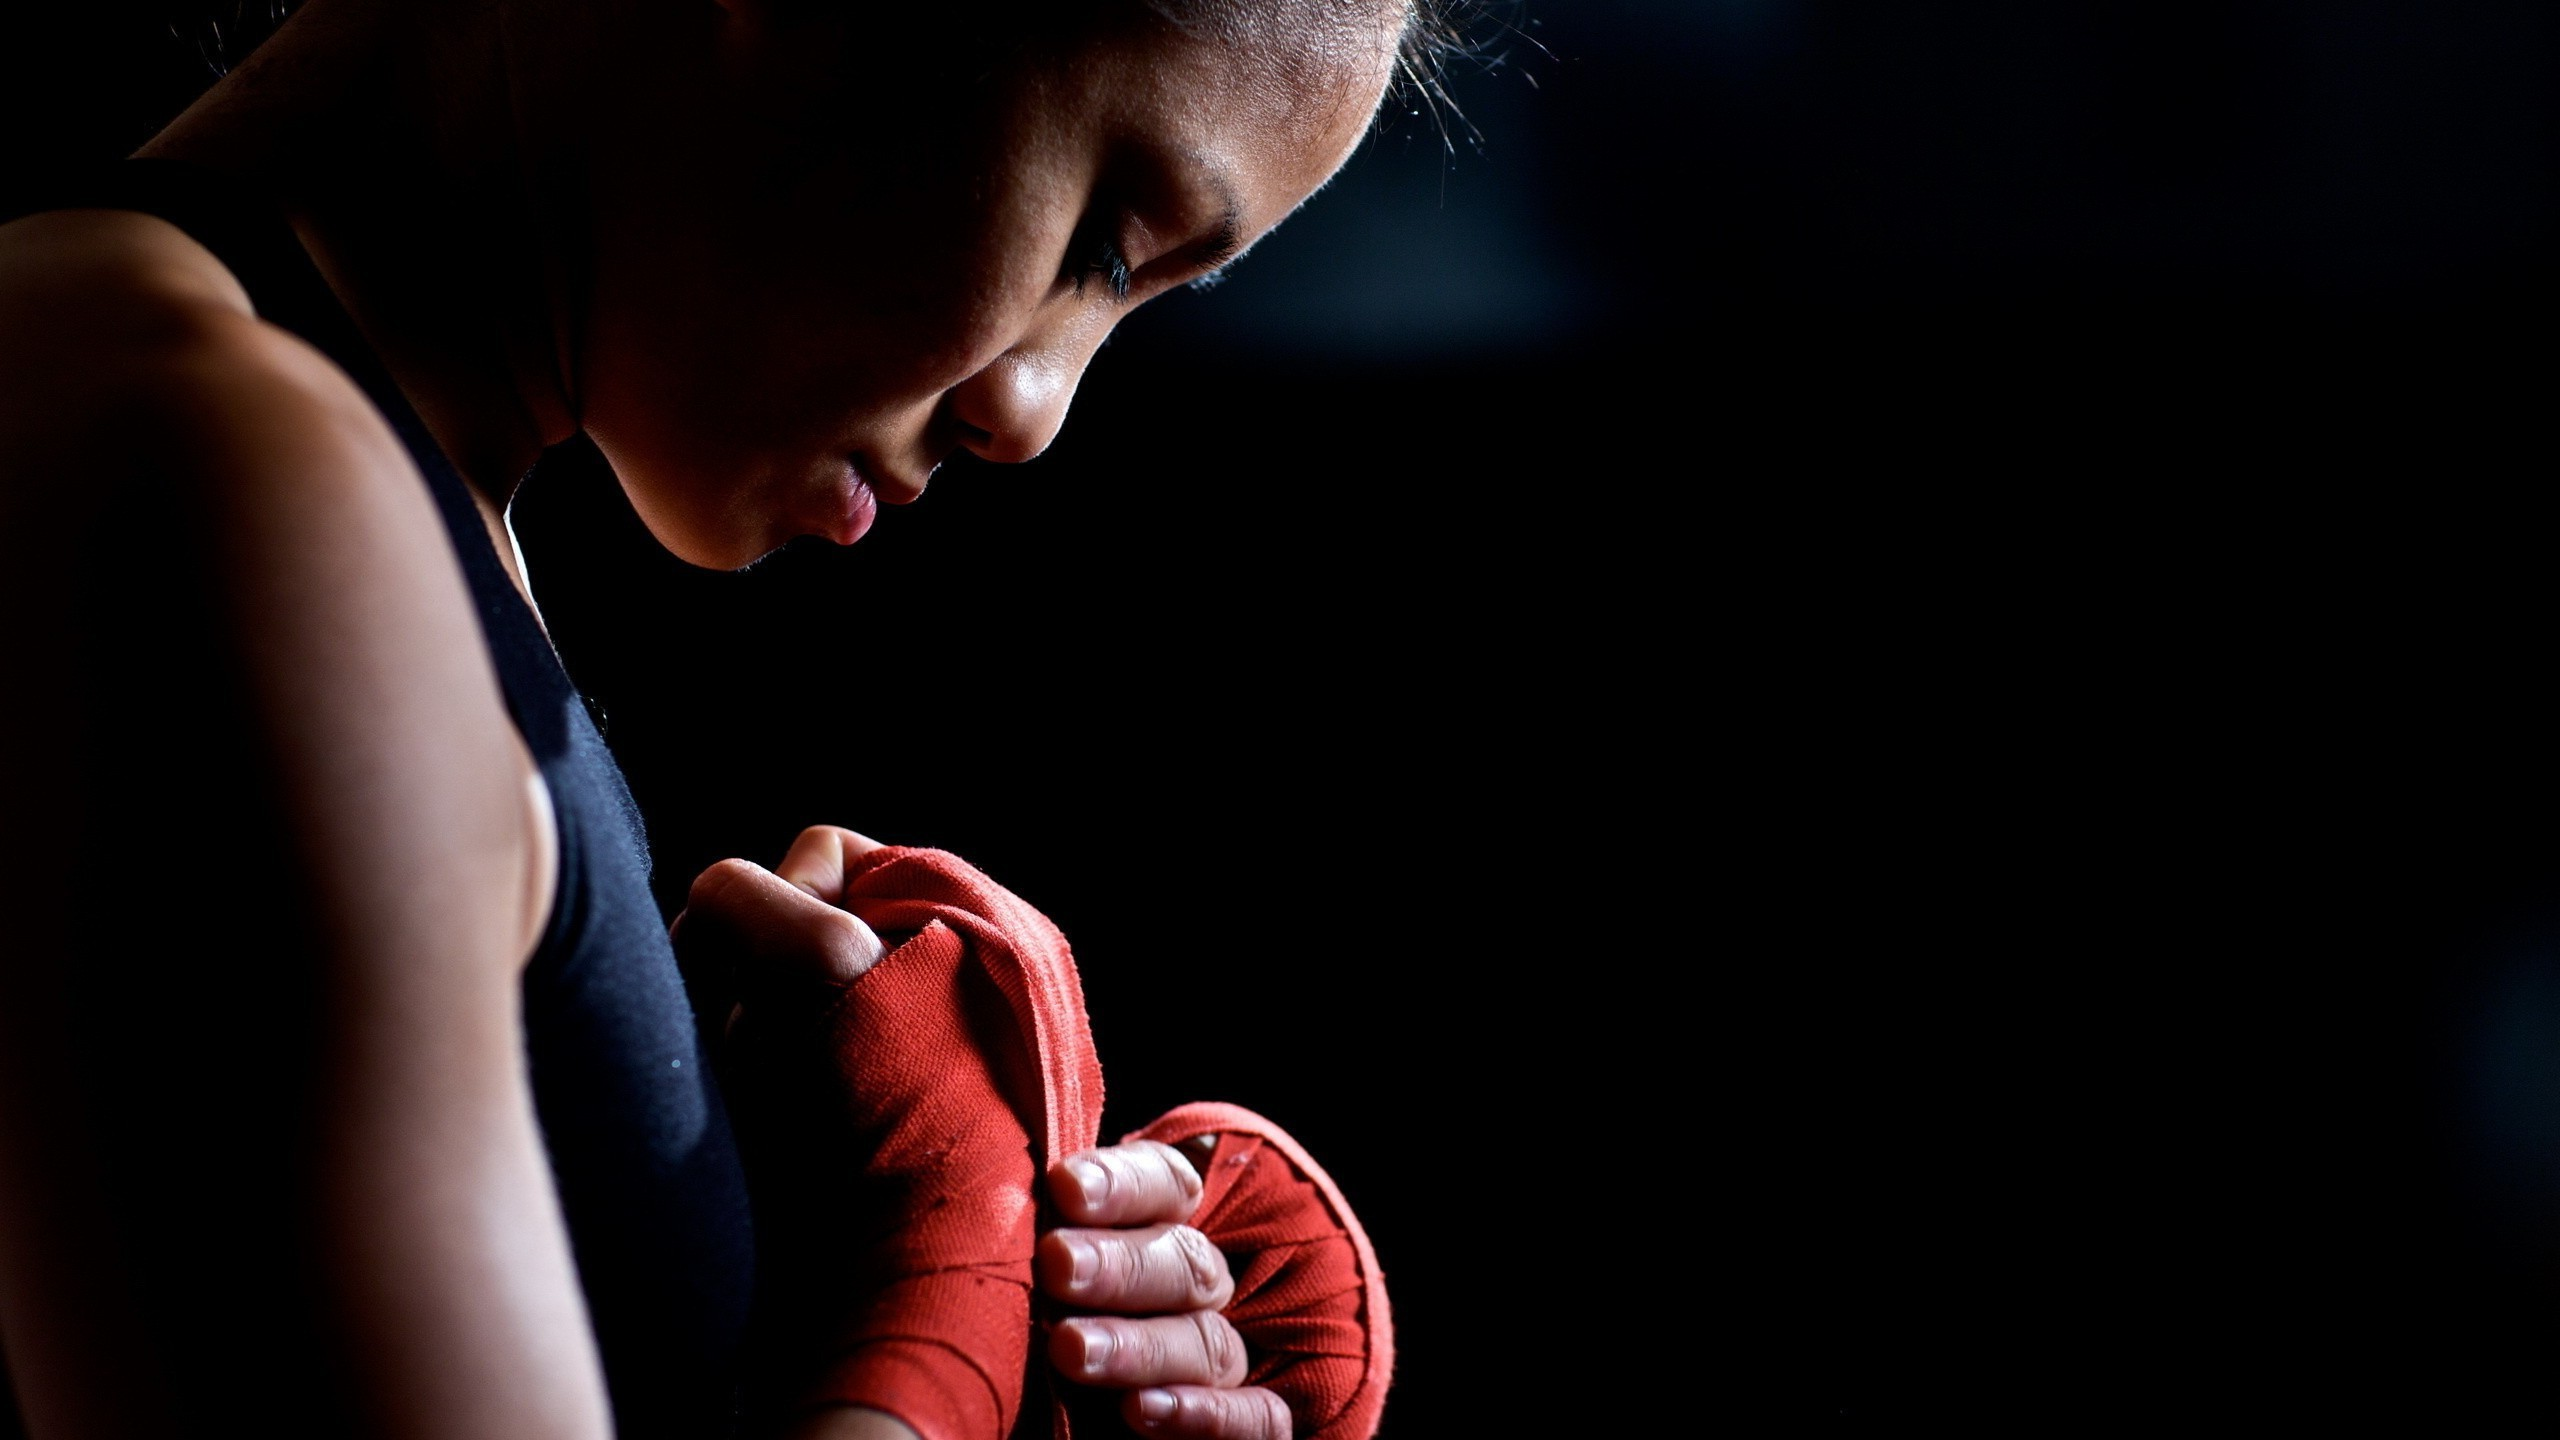 women, Exercising, Boxing Wallpapers HD / Desktop and Mobile Backgrounds